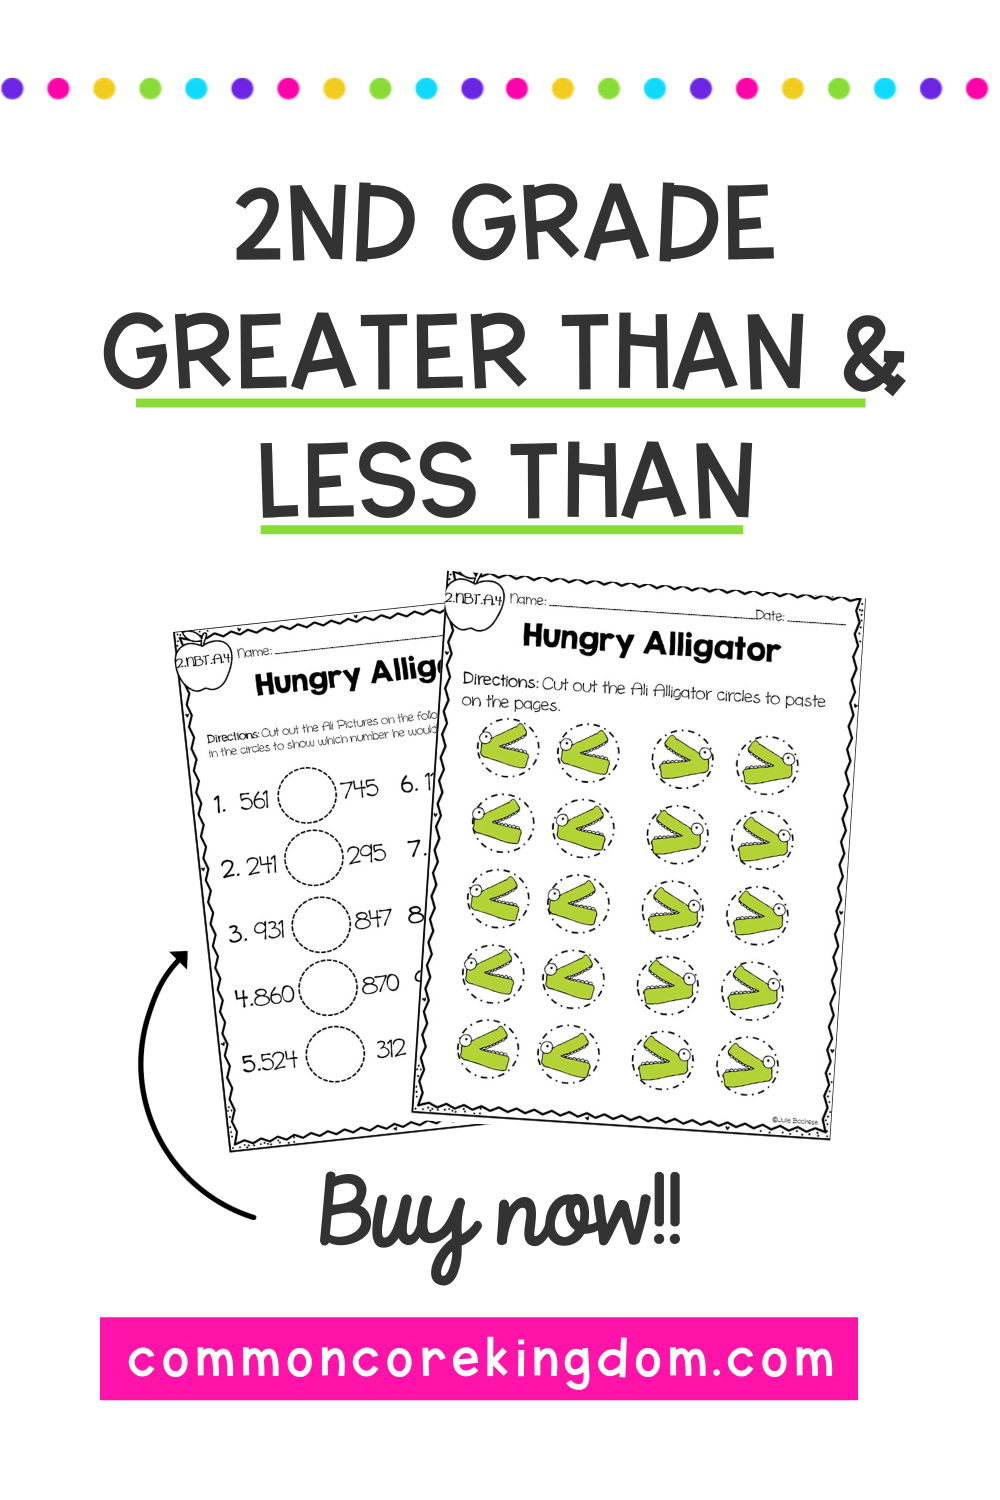 Greater Than Less Than Equal To 2nd Grade Common Core 2 Nbt A 4 2nd Grade Math 2nd Grade Vocabulary Cards [ 1500 x 1000 Pixel ]